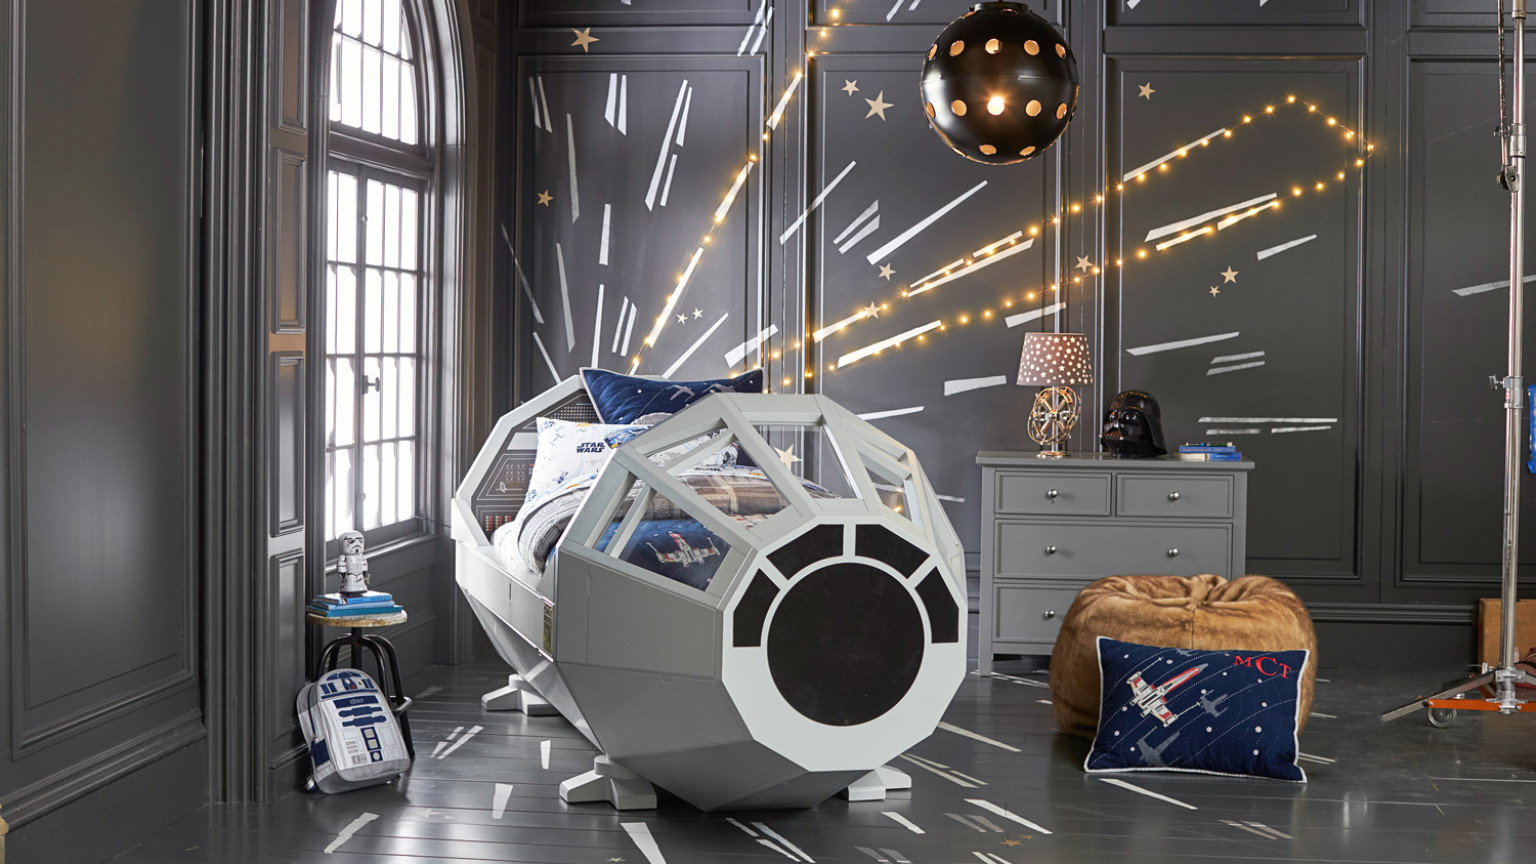 Star Wars Home Decor Takes Off Builder Magazine Design